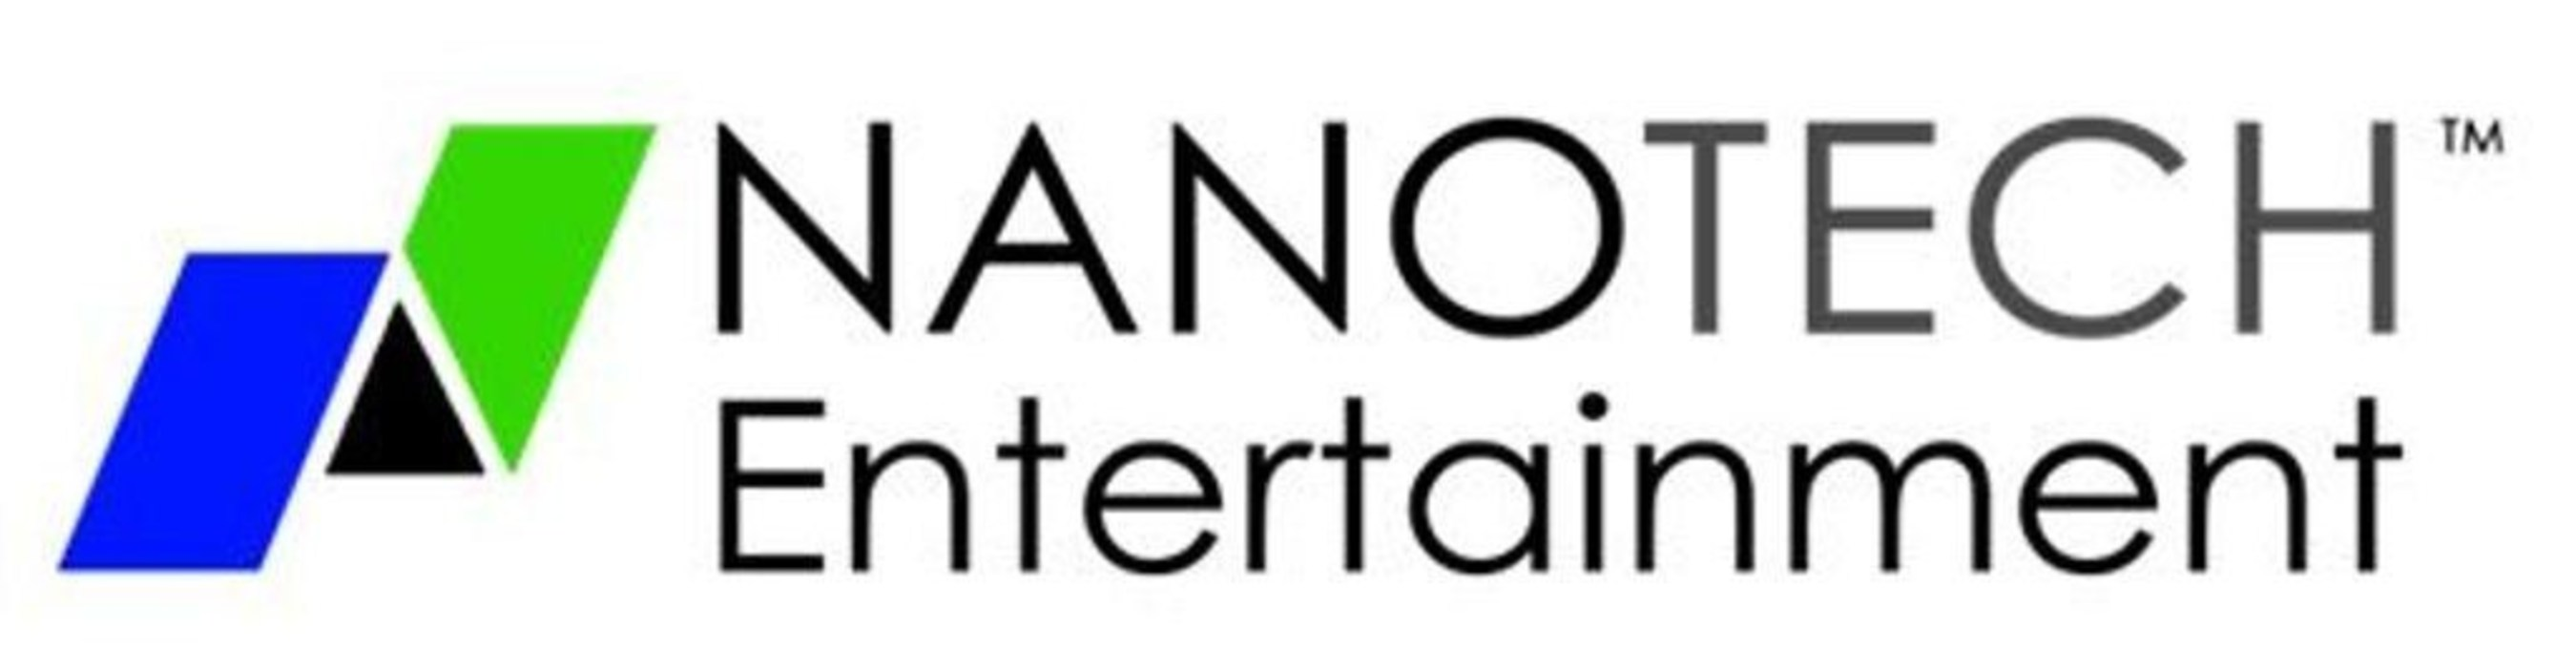 NanoTech Entertainment (NTEK), a pioneer in bringing the 4K Ultra HD experience to consumers, NanoTech Entertainment is a conglomerate of entertainment companies focused on leveraging technology to deliver state of the art entertainment and communications products. Headquartered in San Jose, CA, NanoTech Entertainment is a technology company that focuses on all aspects of the entertainment industry. With six technology business units, focusing on 3D, Gaming, Media & IPTV, Mobile Apps, and...